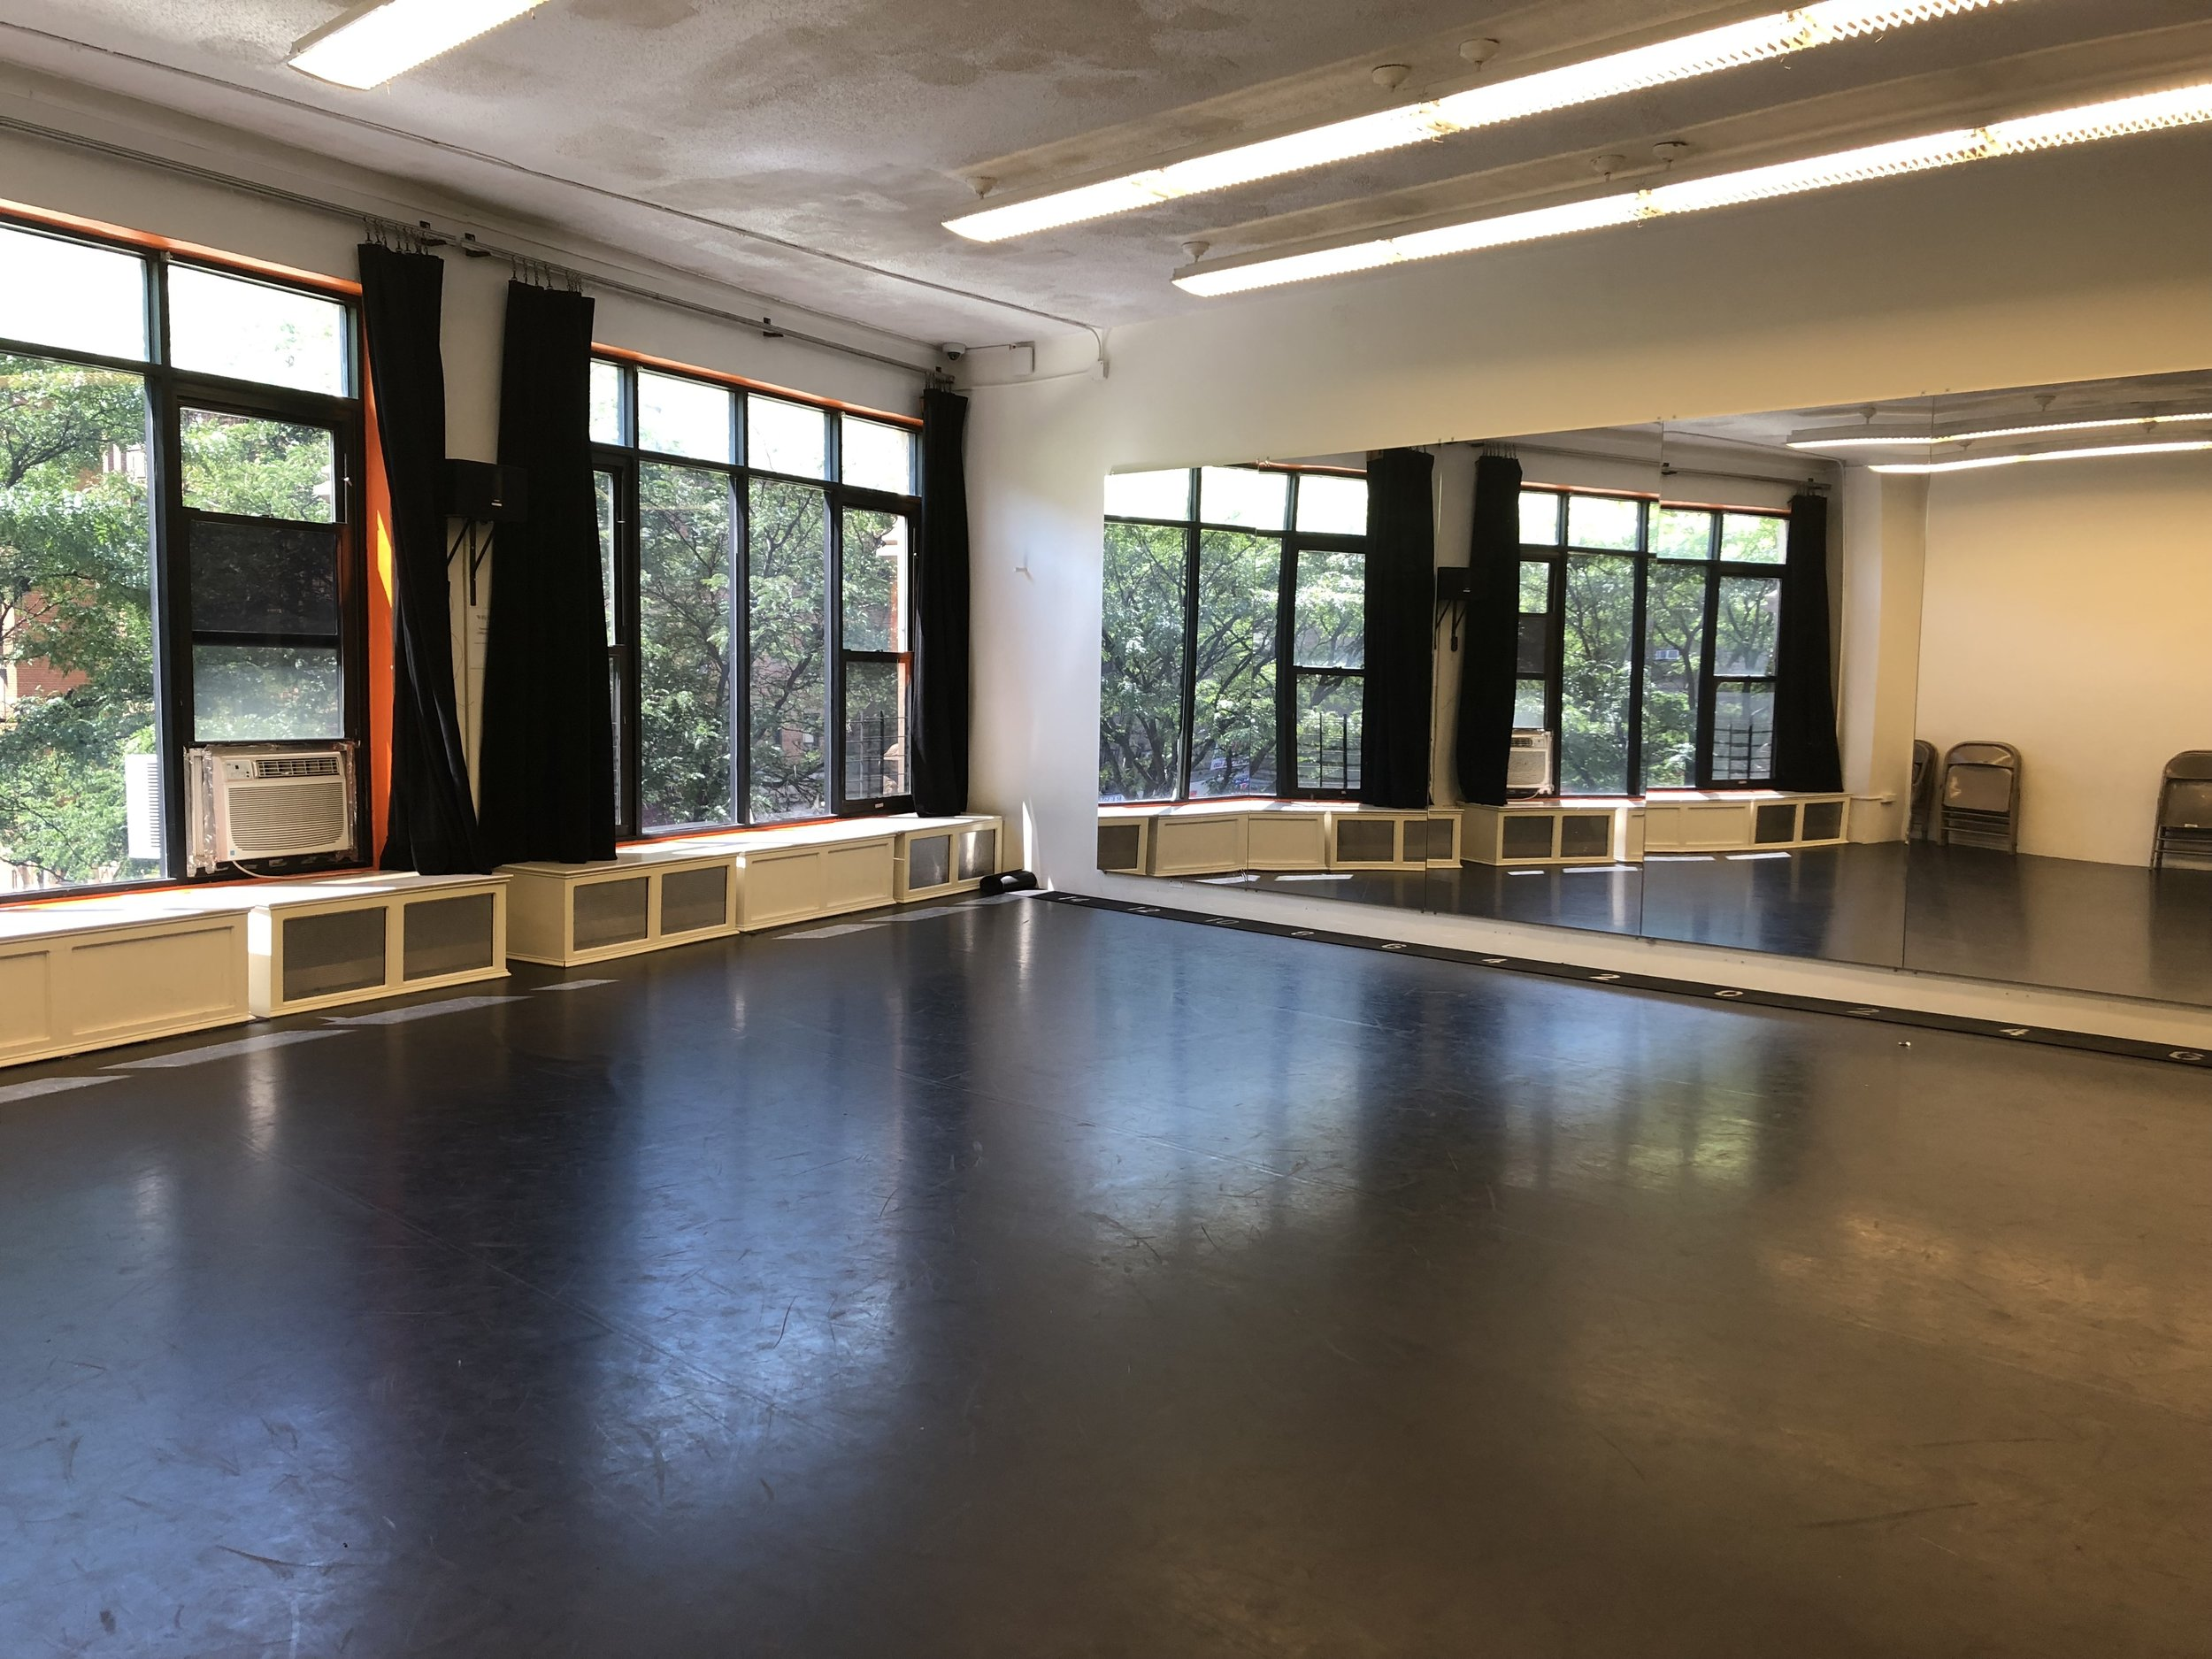 Studio 1 - A versatile space located adjacent to the Reception Room; perfect for small rehearsals, classes, photo shoots, and auditions.MEDIUM: Approx. 25' x 27'Sprung Black Mezzafloor, High Ceilings, White Walls, Window Blackout Curtains, 1 Wall of Mirrors, Window A/C Unit, Bluetooth Speaker w/ Aux, Portable Ballet Barres, Keyboard Upon Request, Free Wifi No Tap ShoesIndividual Artist: $15/hr*Artist Classes: $20/hr*Non-Profit: $25/hr*For-Profit: $35/hr*